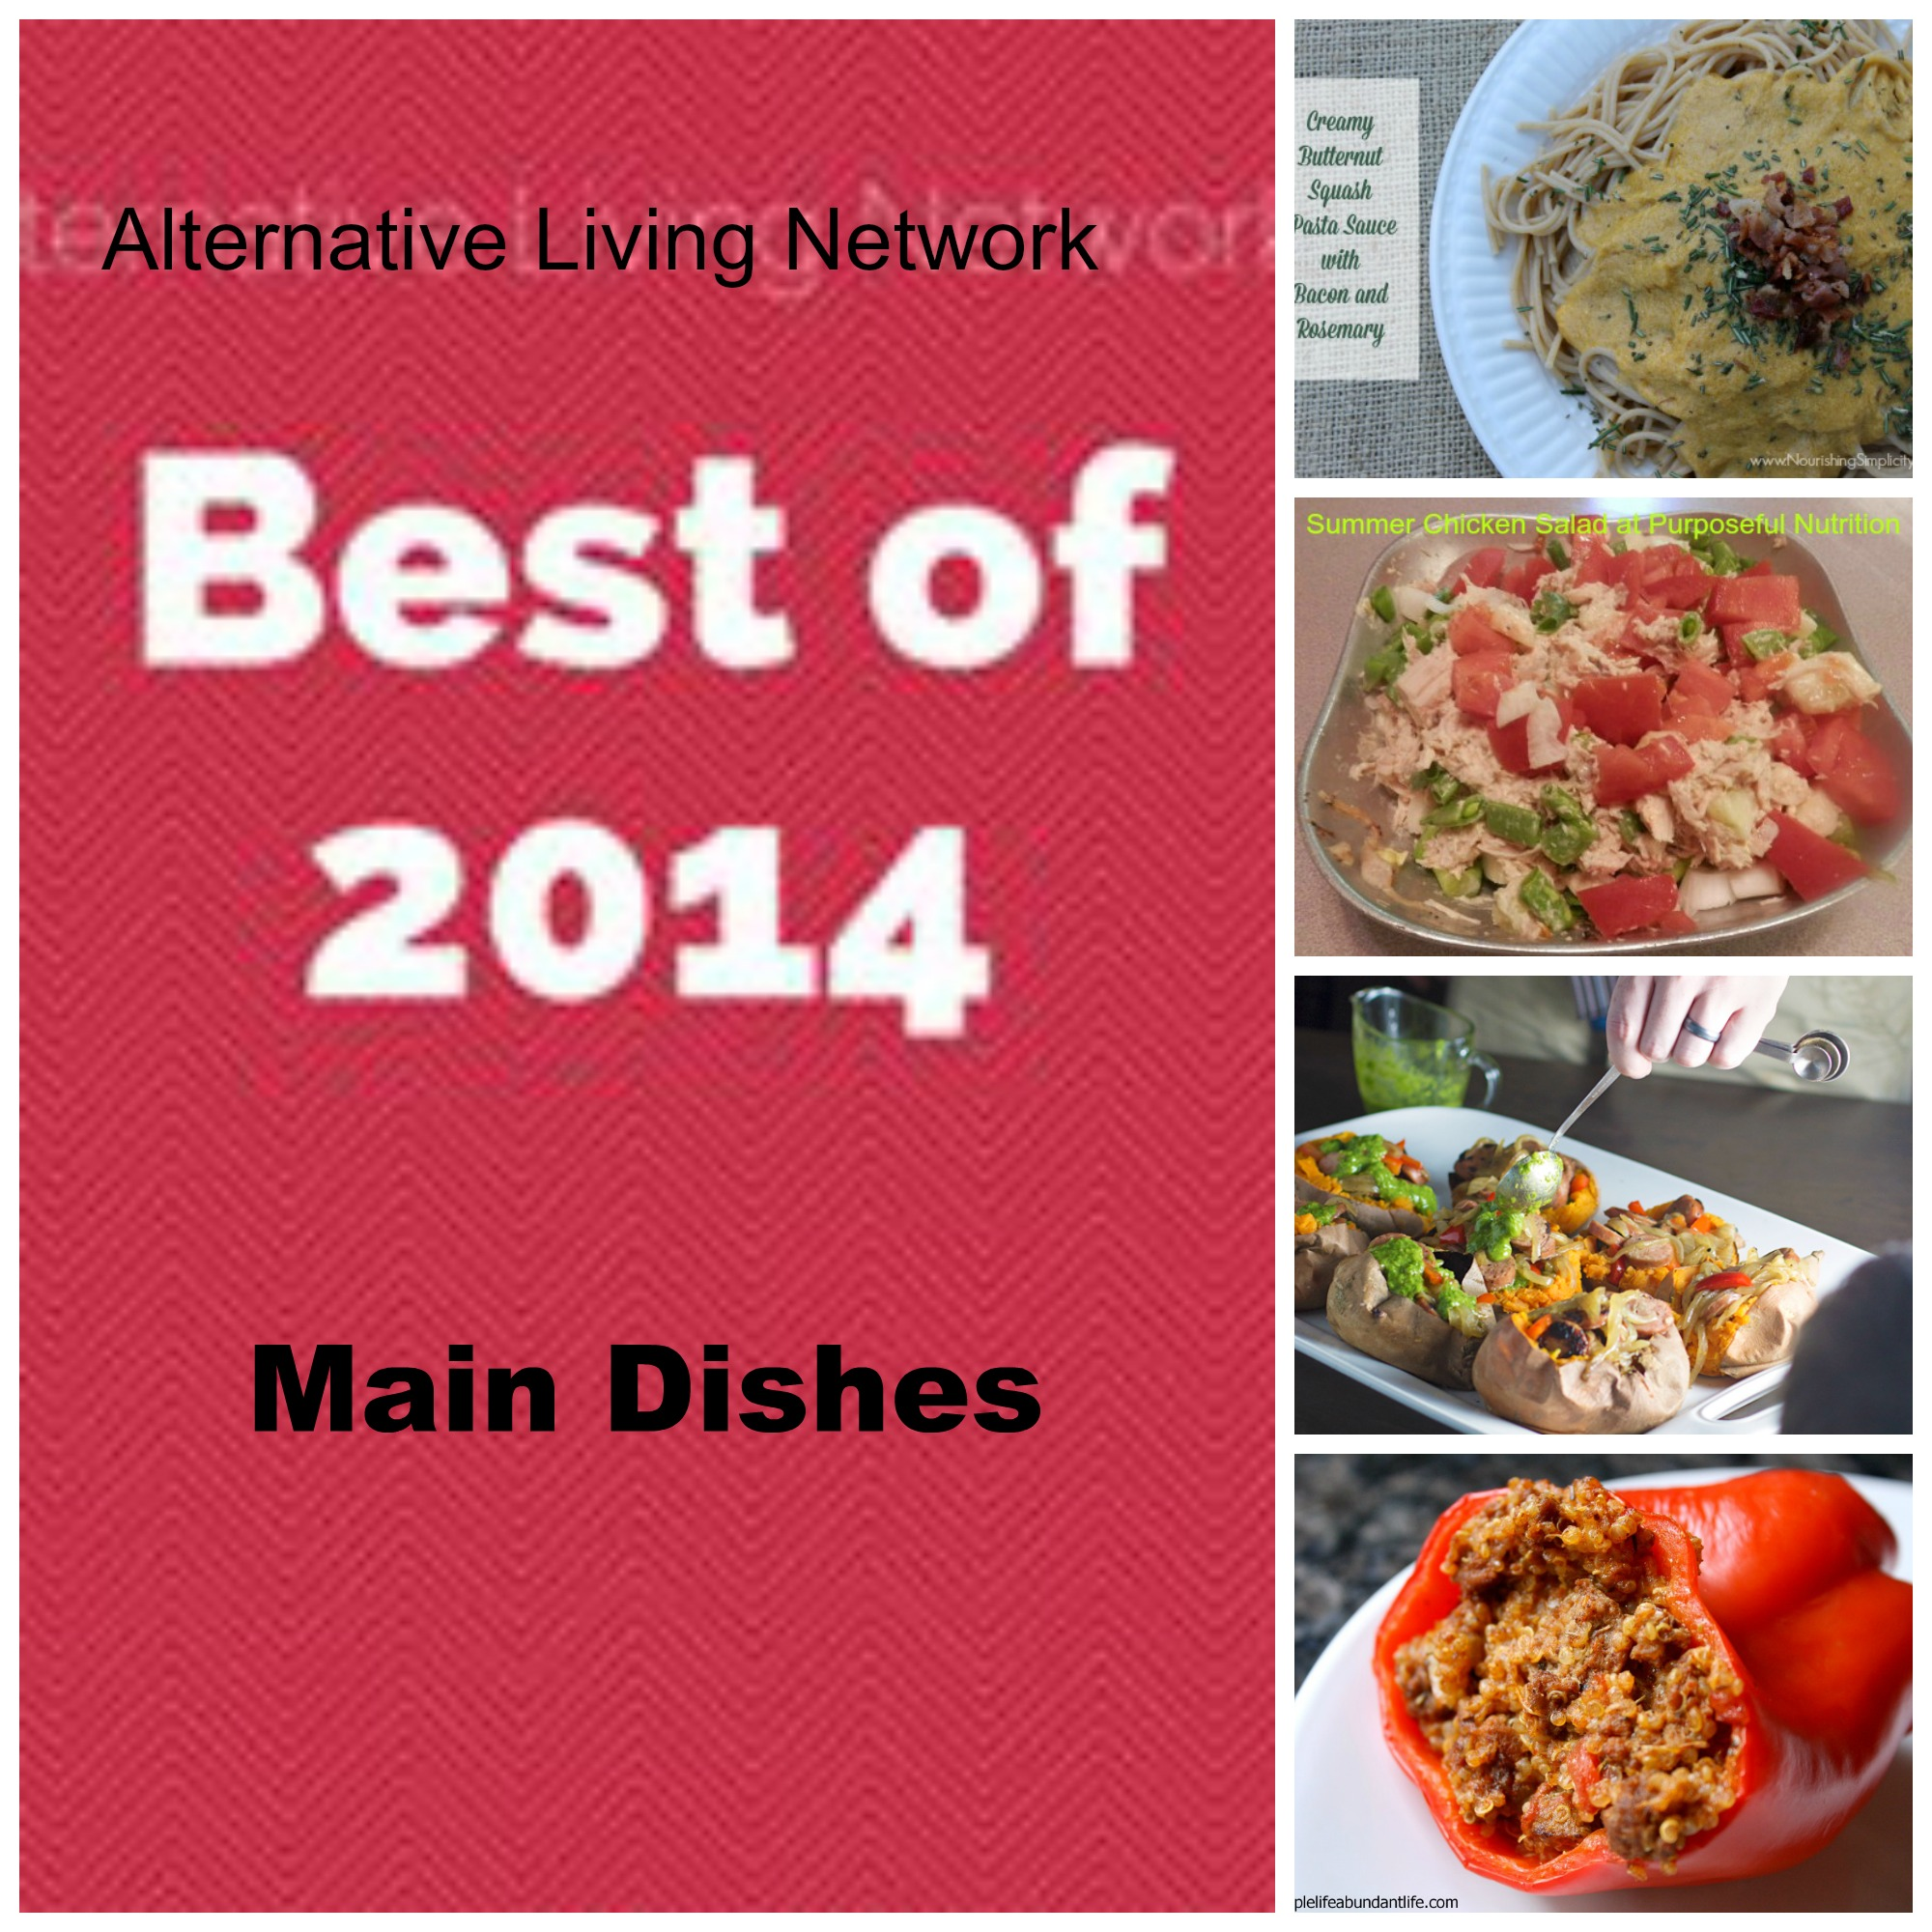 Best of ALN Main Dishes